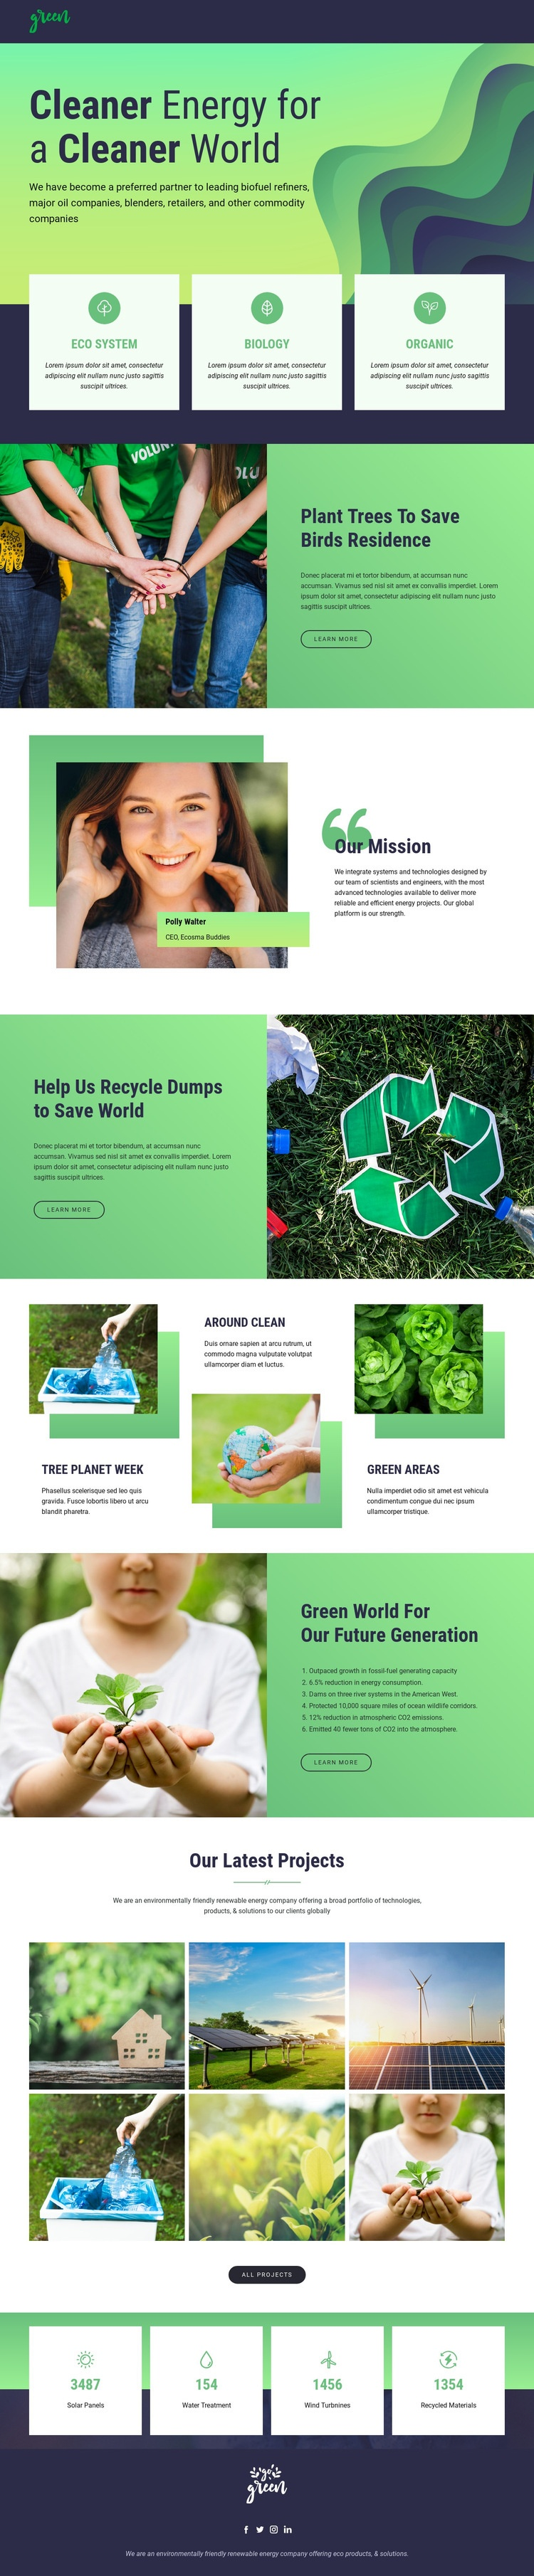 Clean energy to save nature Html Code Example